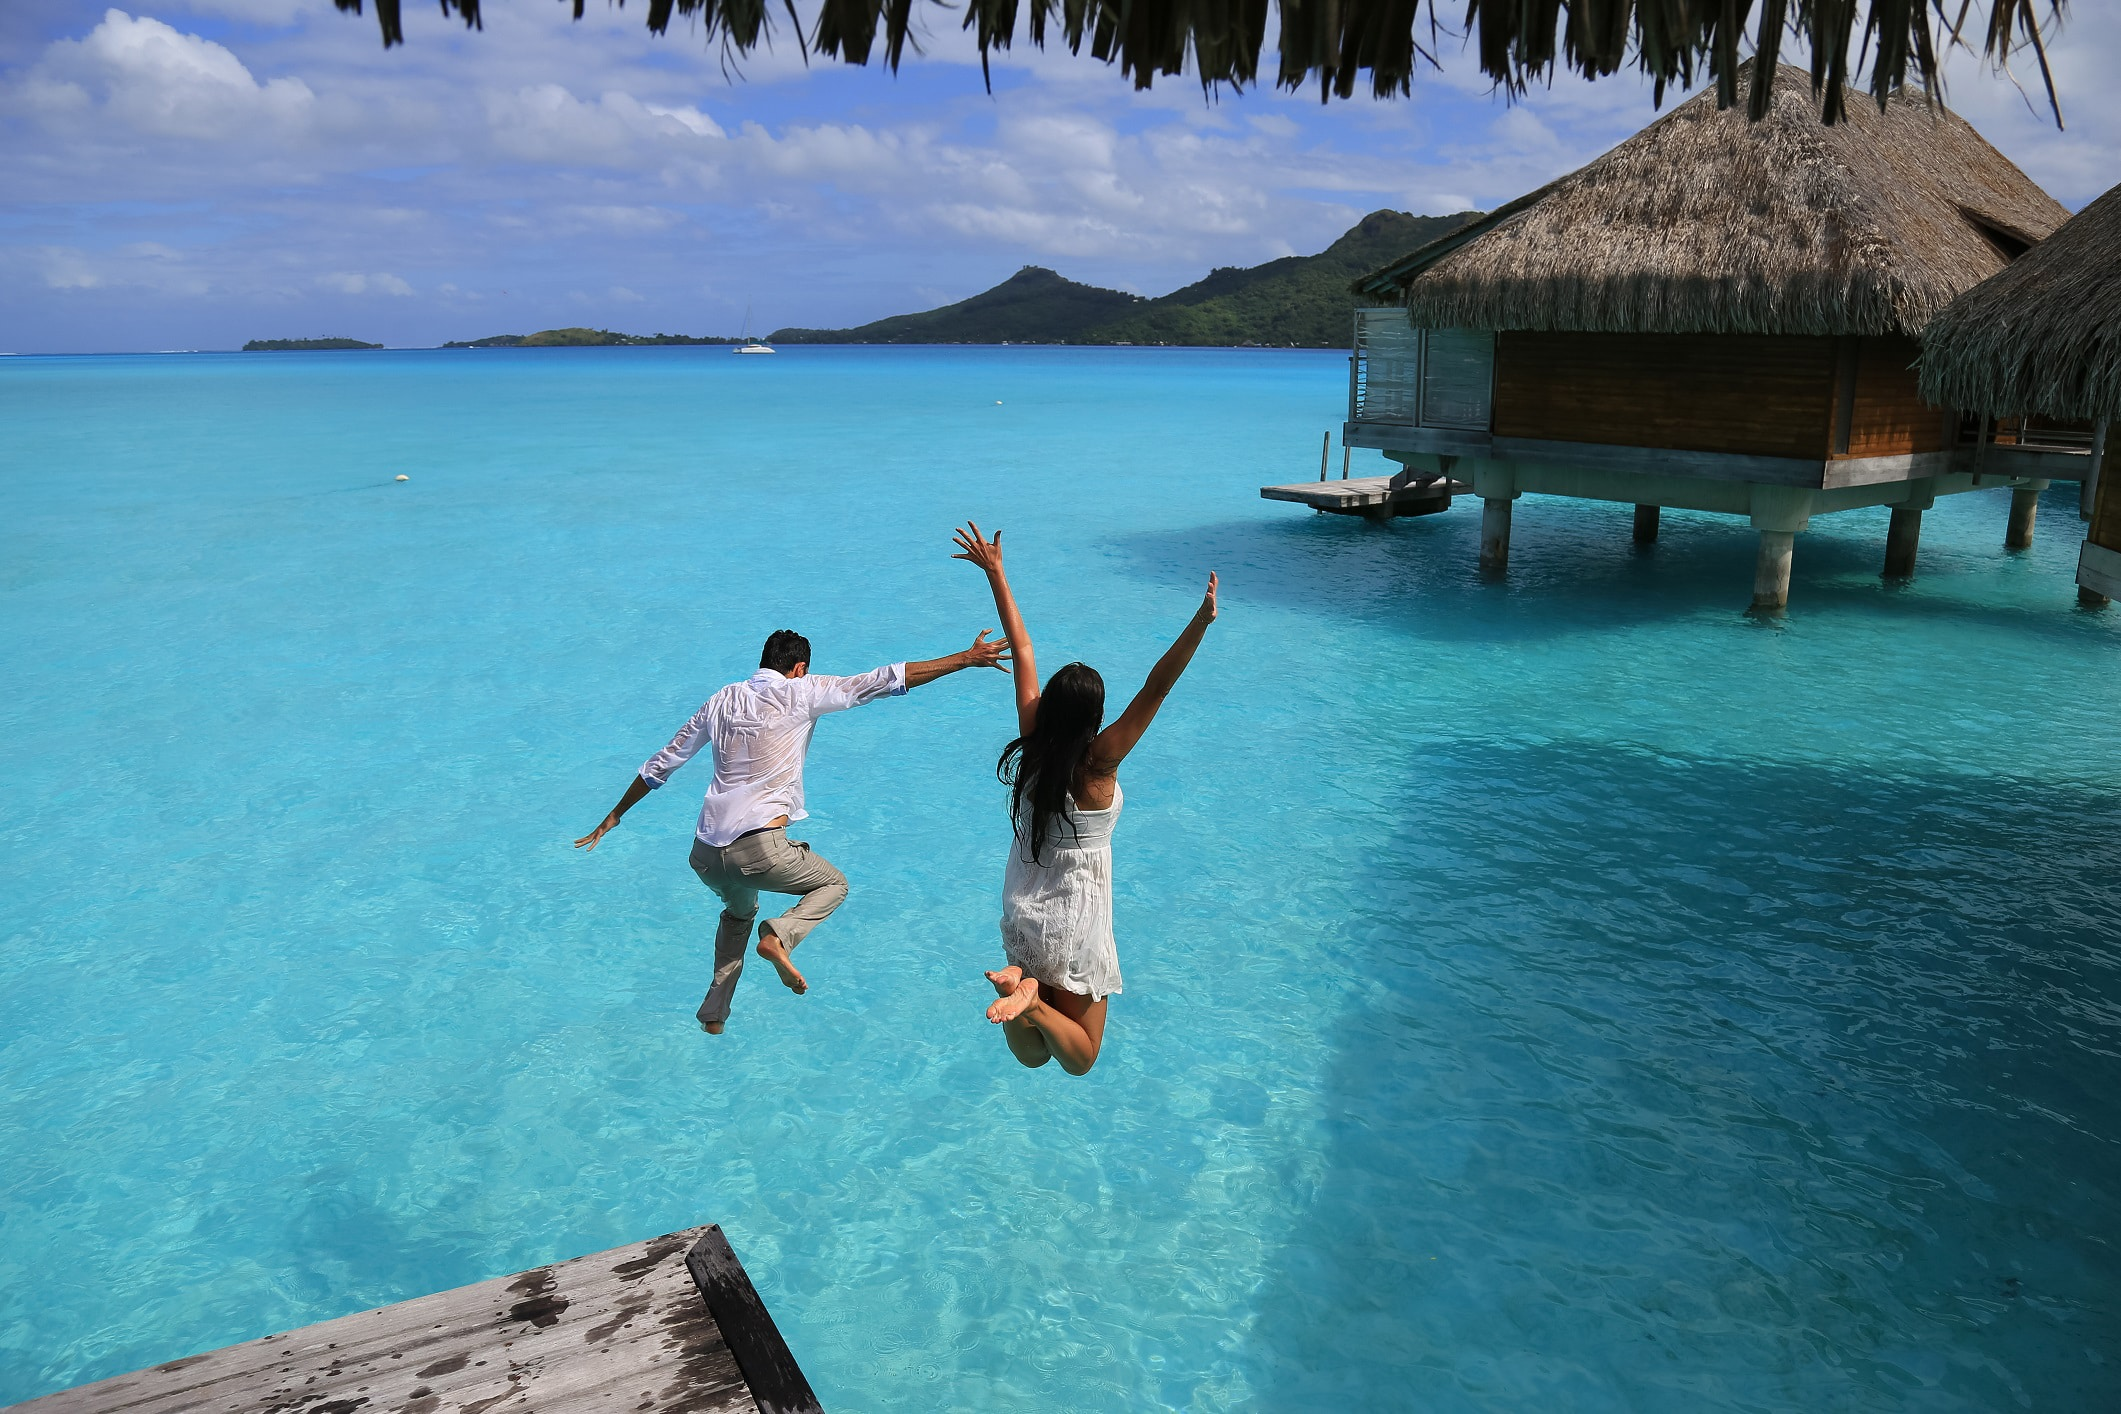 A couple jumps into water at tropical destination. Photo: Shutterstock.